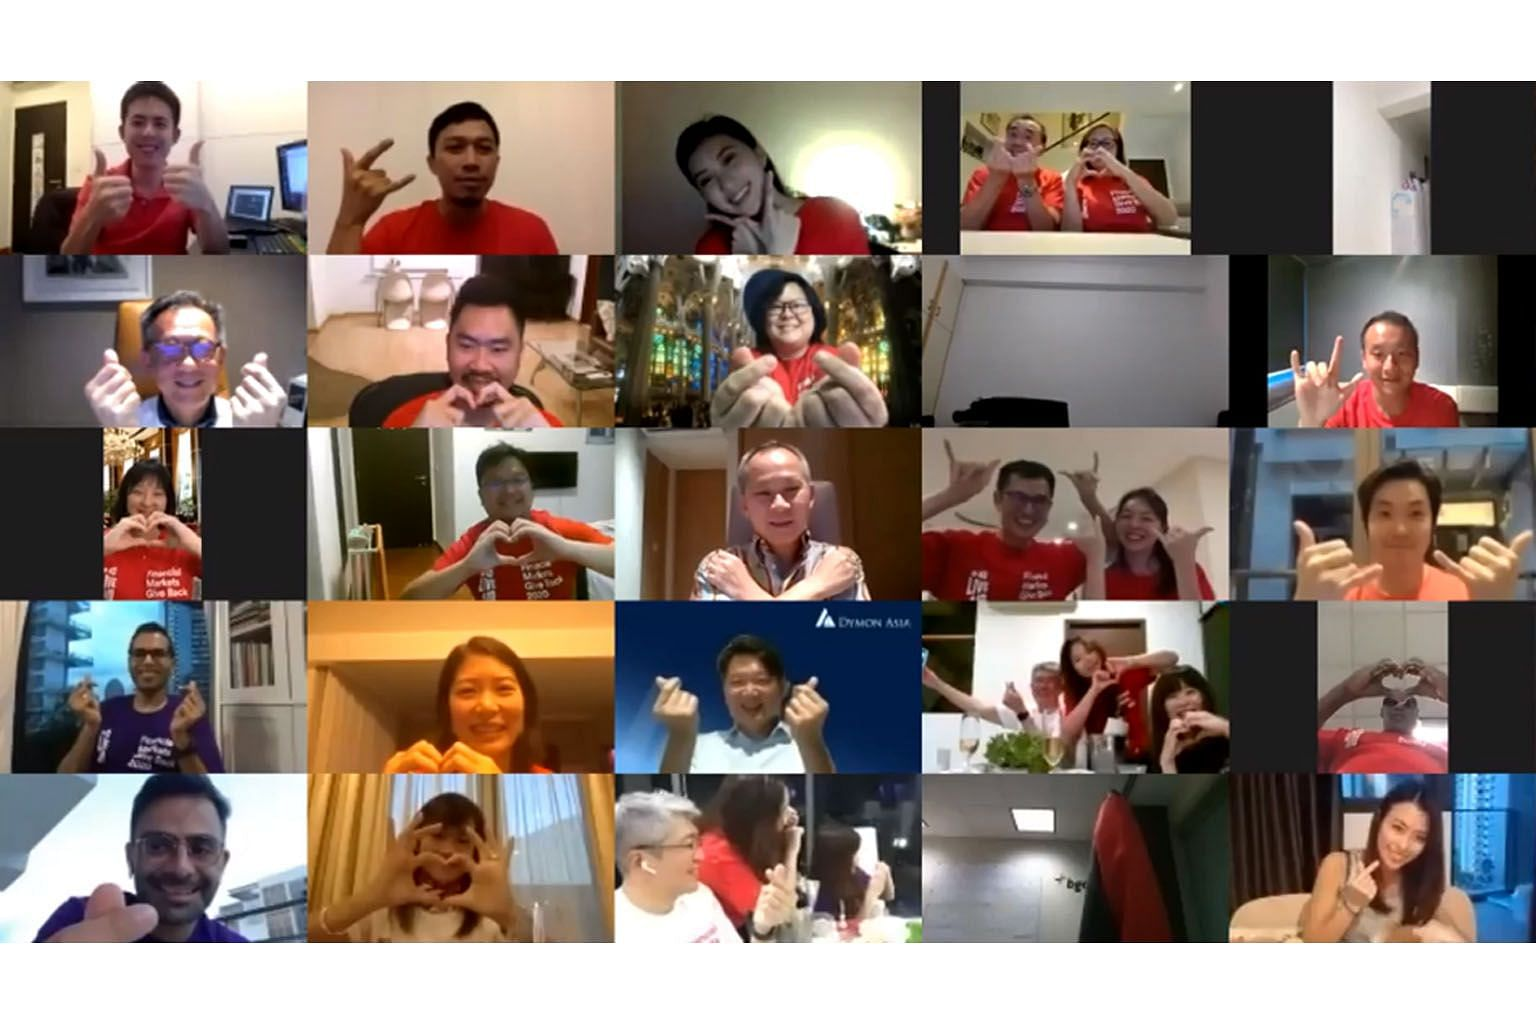 Guests attending ACI Singapore's fund-raising dinner via Zoom on May 29. The dinner raised over $500,000 for a new fund for projects that meet the needs of vulnerable groups in society, even beyond Covid-19.